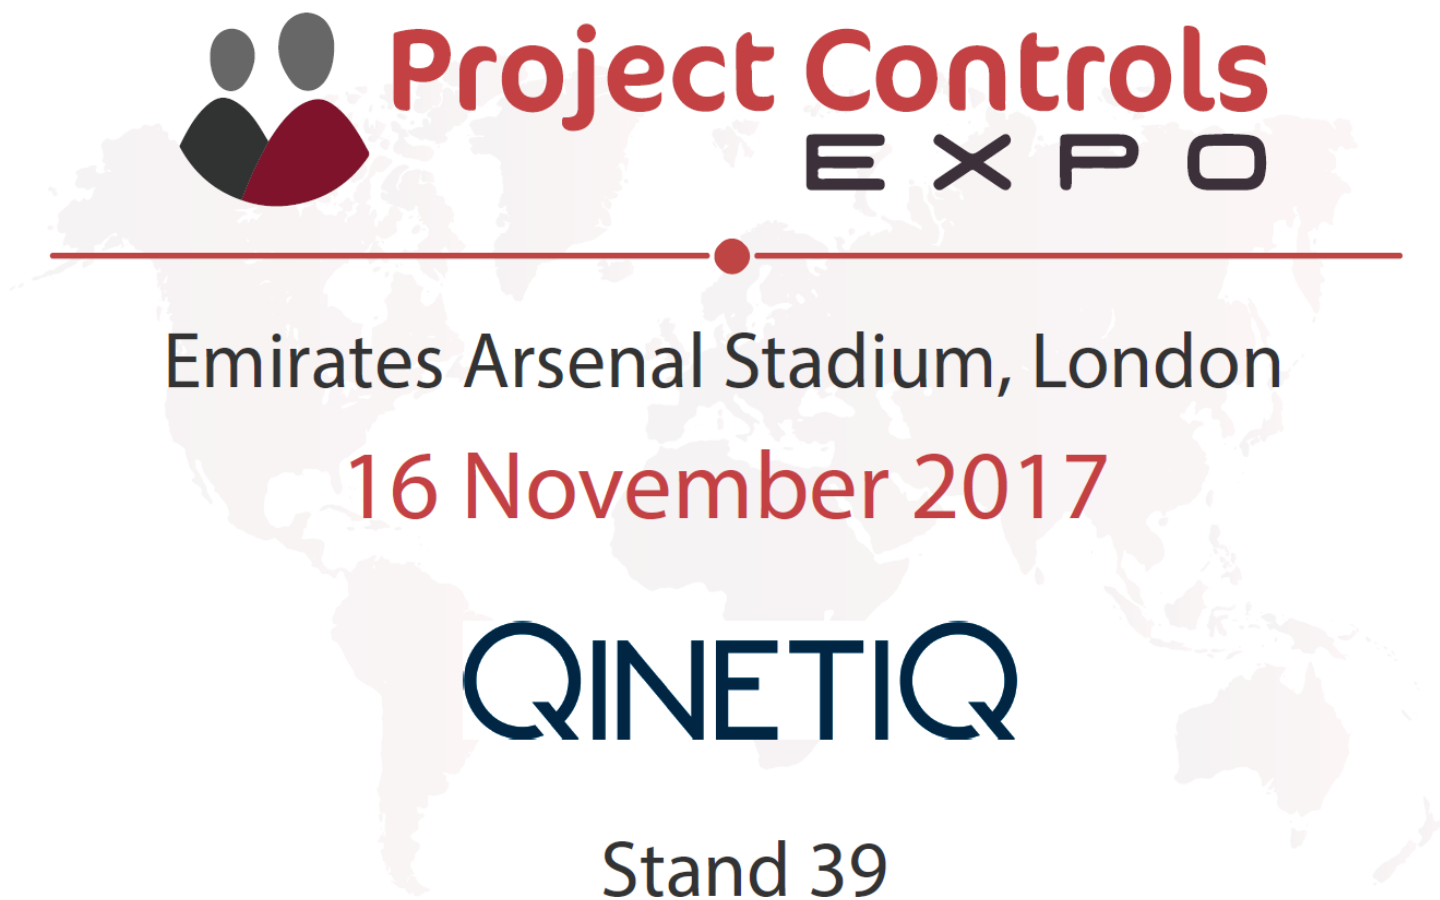 QinetiQ to attend Project Controls Expo 2017